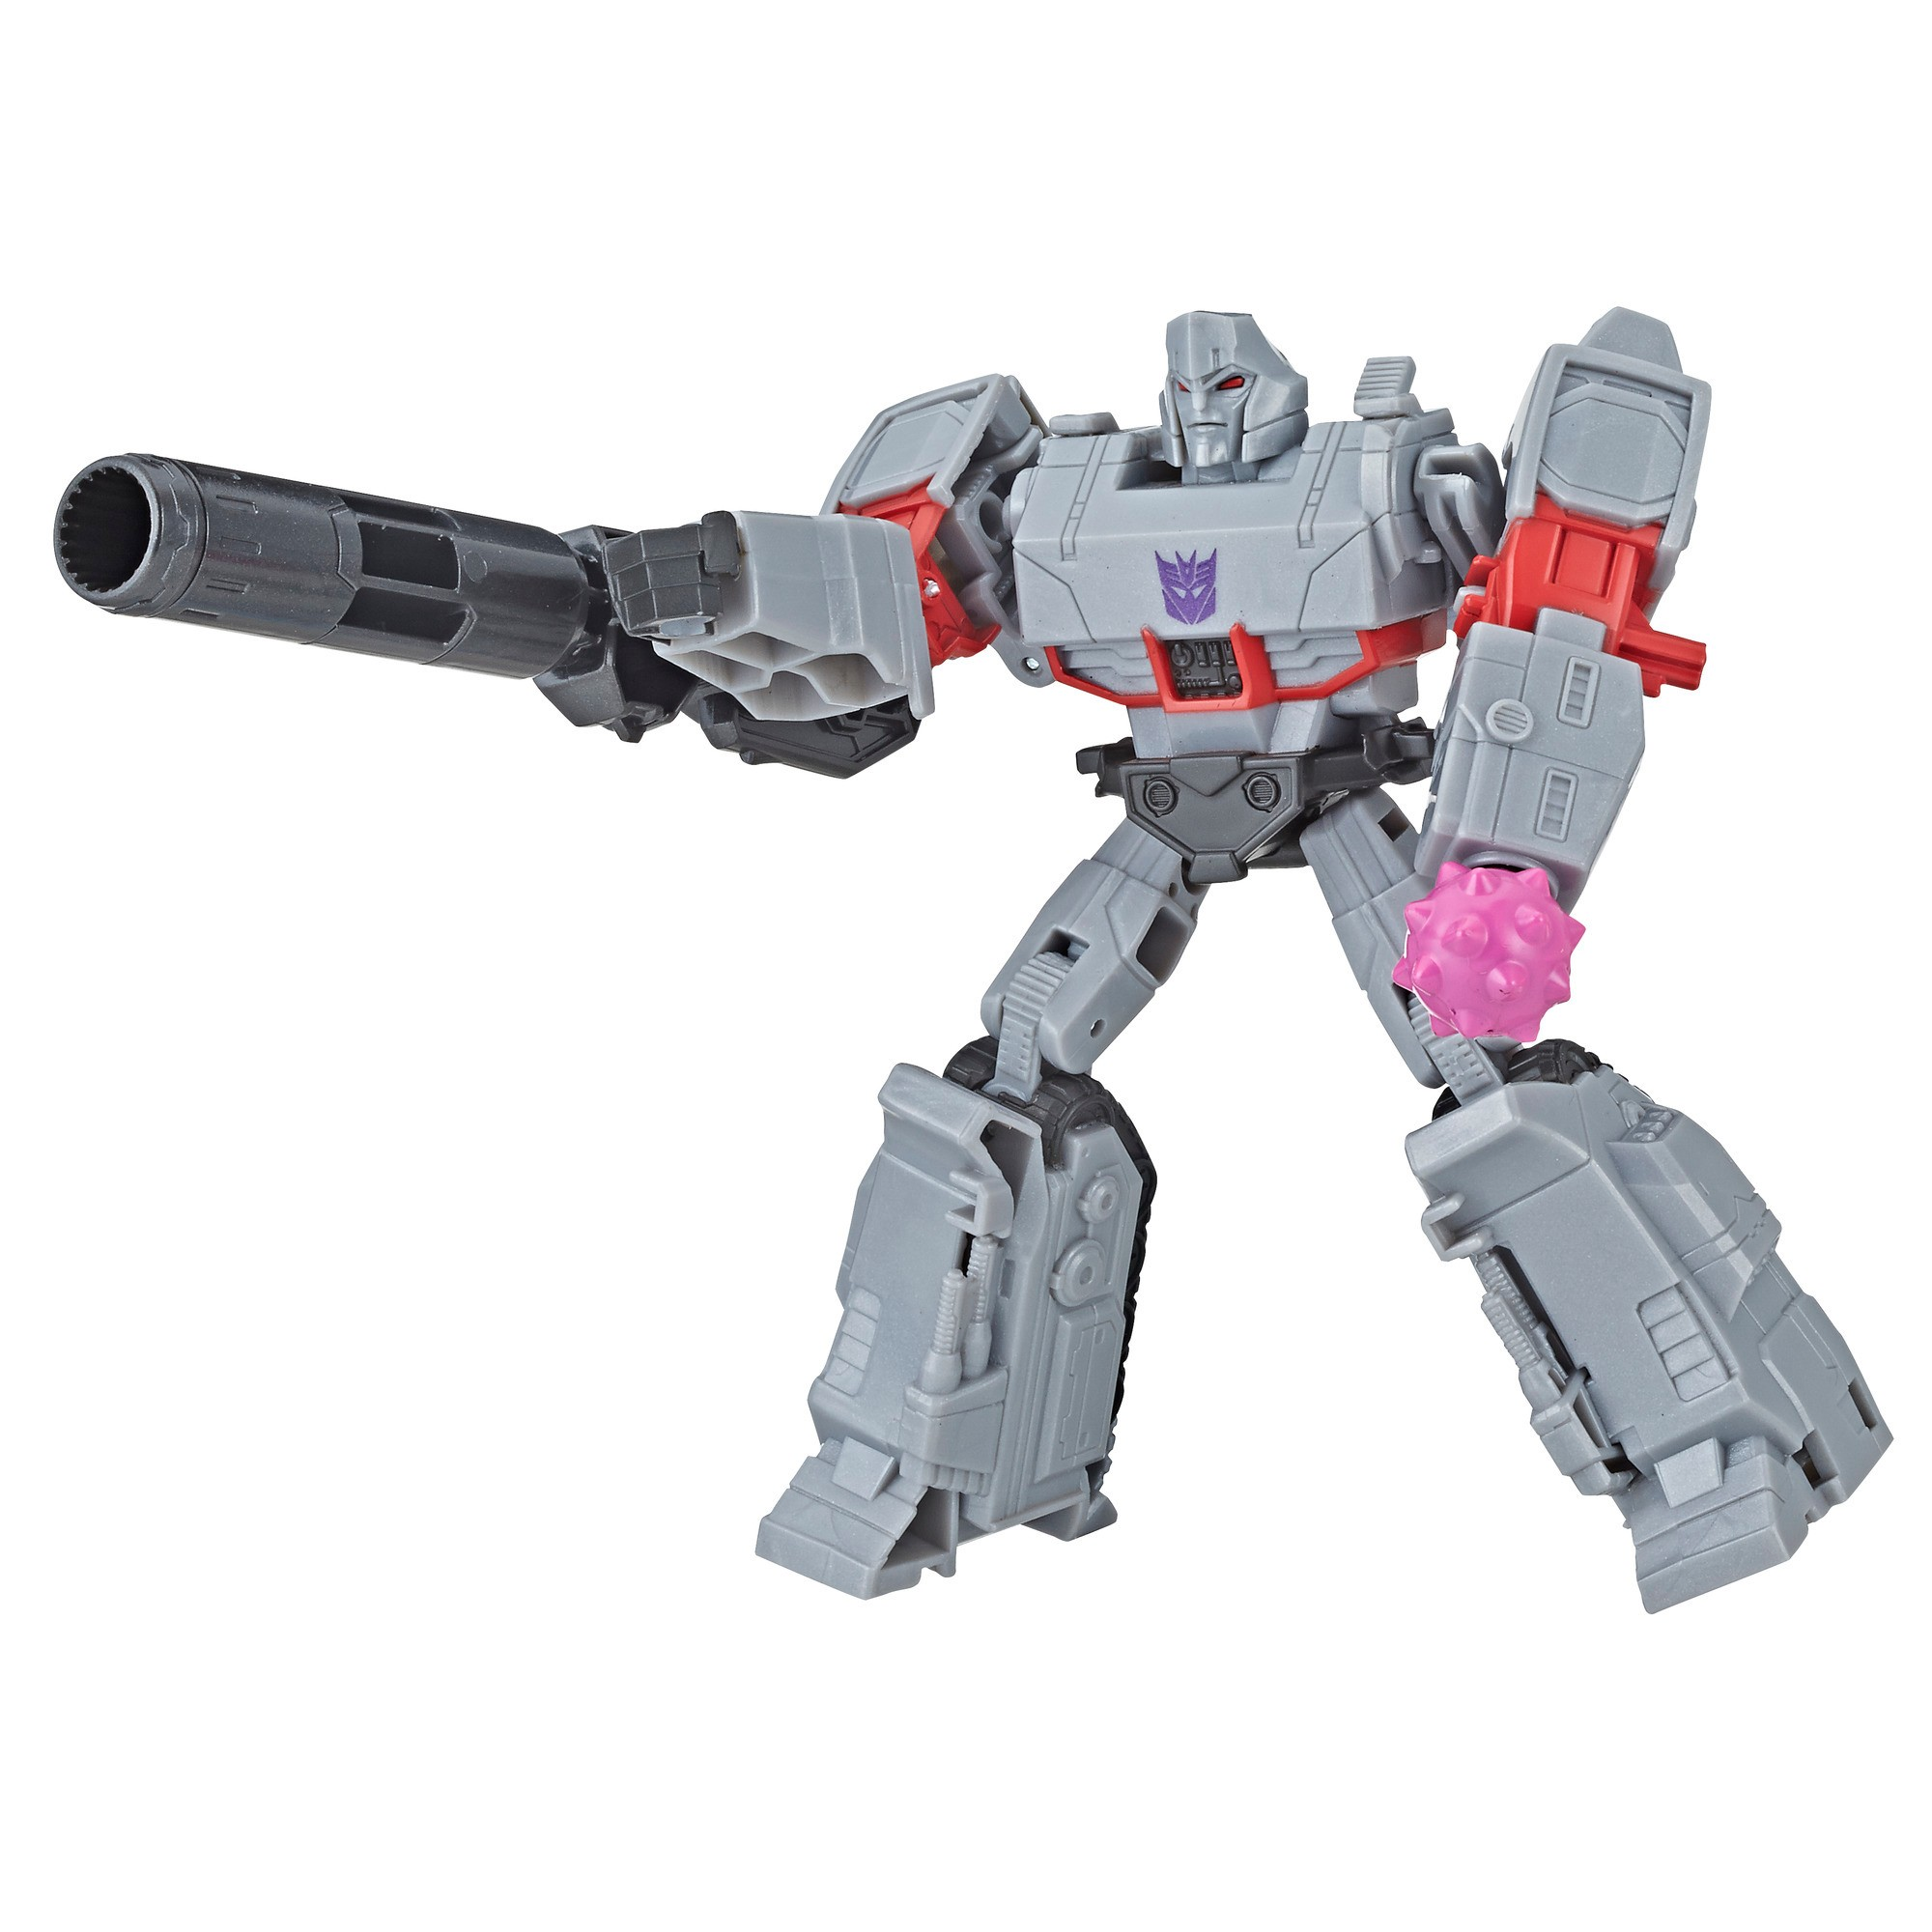 dfeb6847106770 Transformers  Cyberverse Warrior Class wave 2 and Scout Class ...